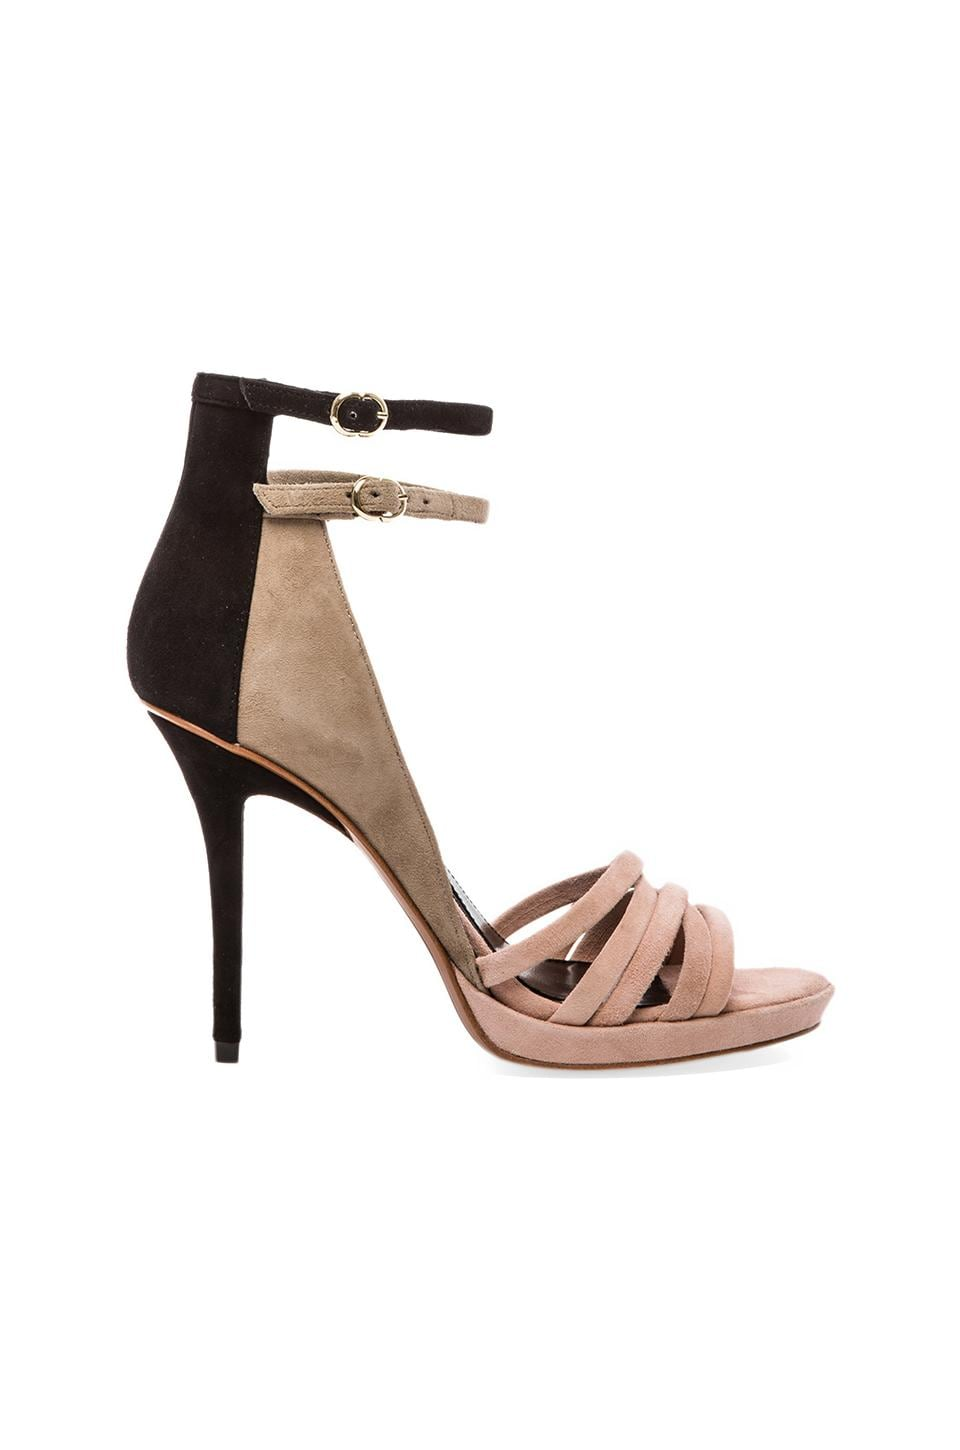 DEREK LAM 10 CROSBY Jules Heel in Blush